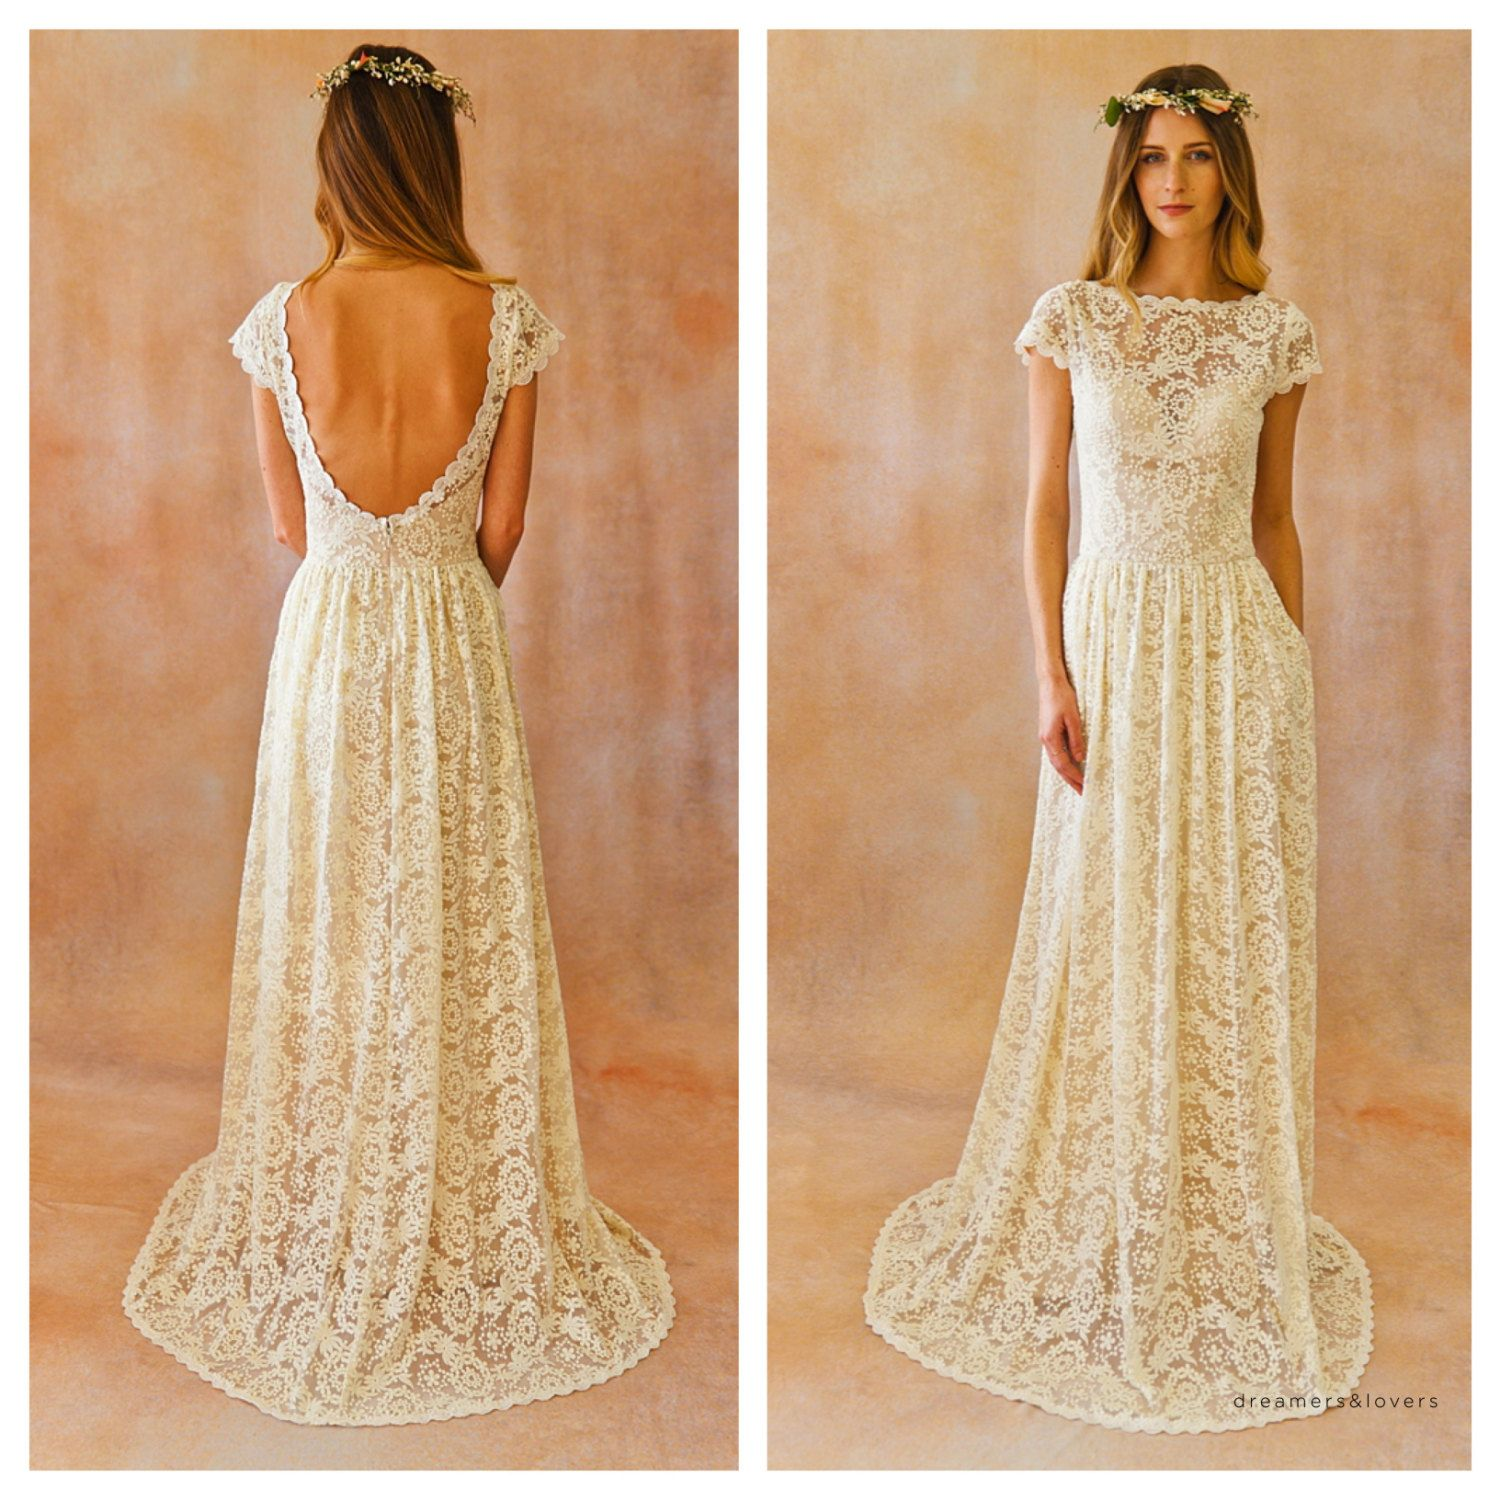 Ivory or White Lace Bohemian BACKLESS WEDDING GOWN. simple and ...